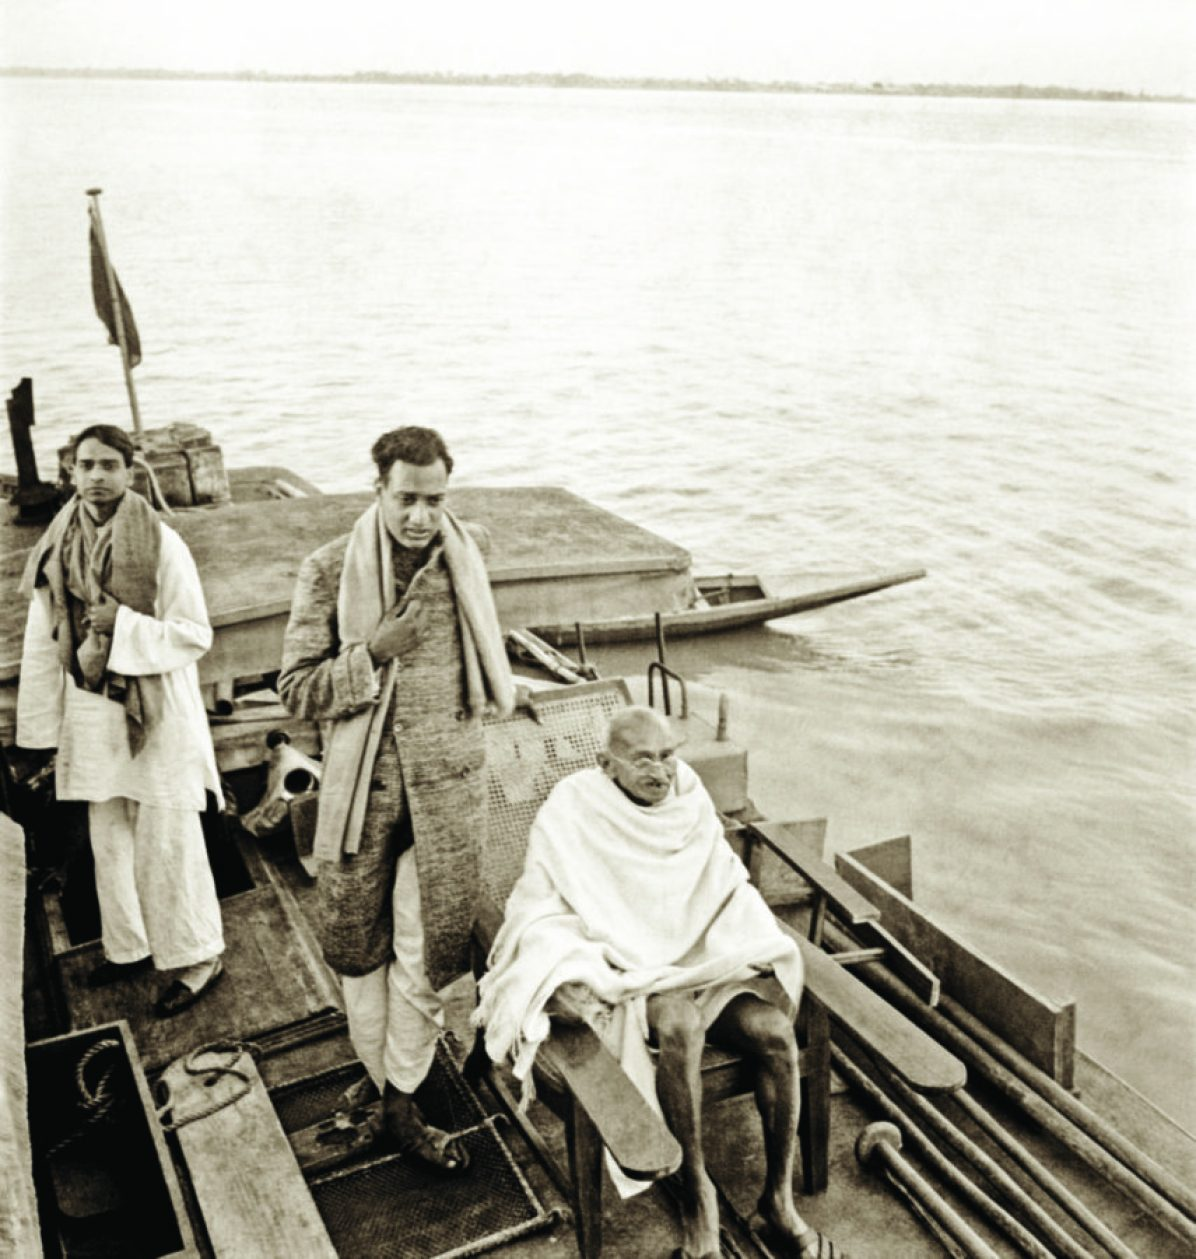 With Sudhir Ghosh and Ramkrishna Bajaj on a boat to Midnapur, East Bengal